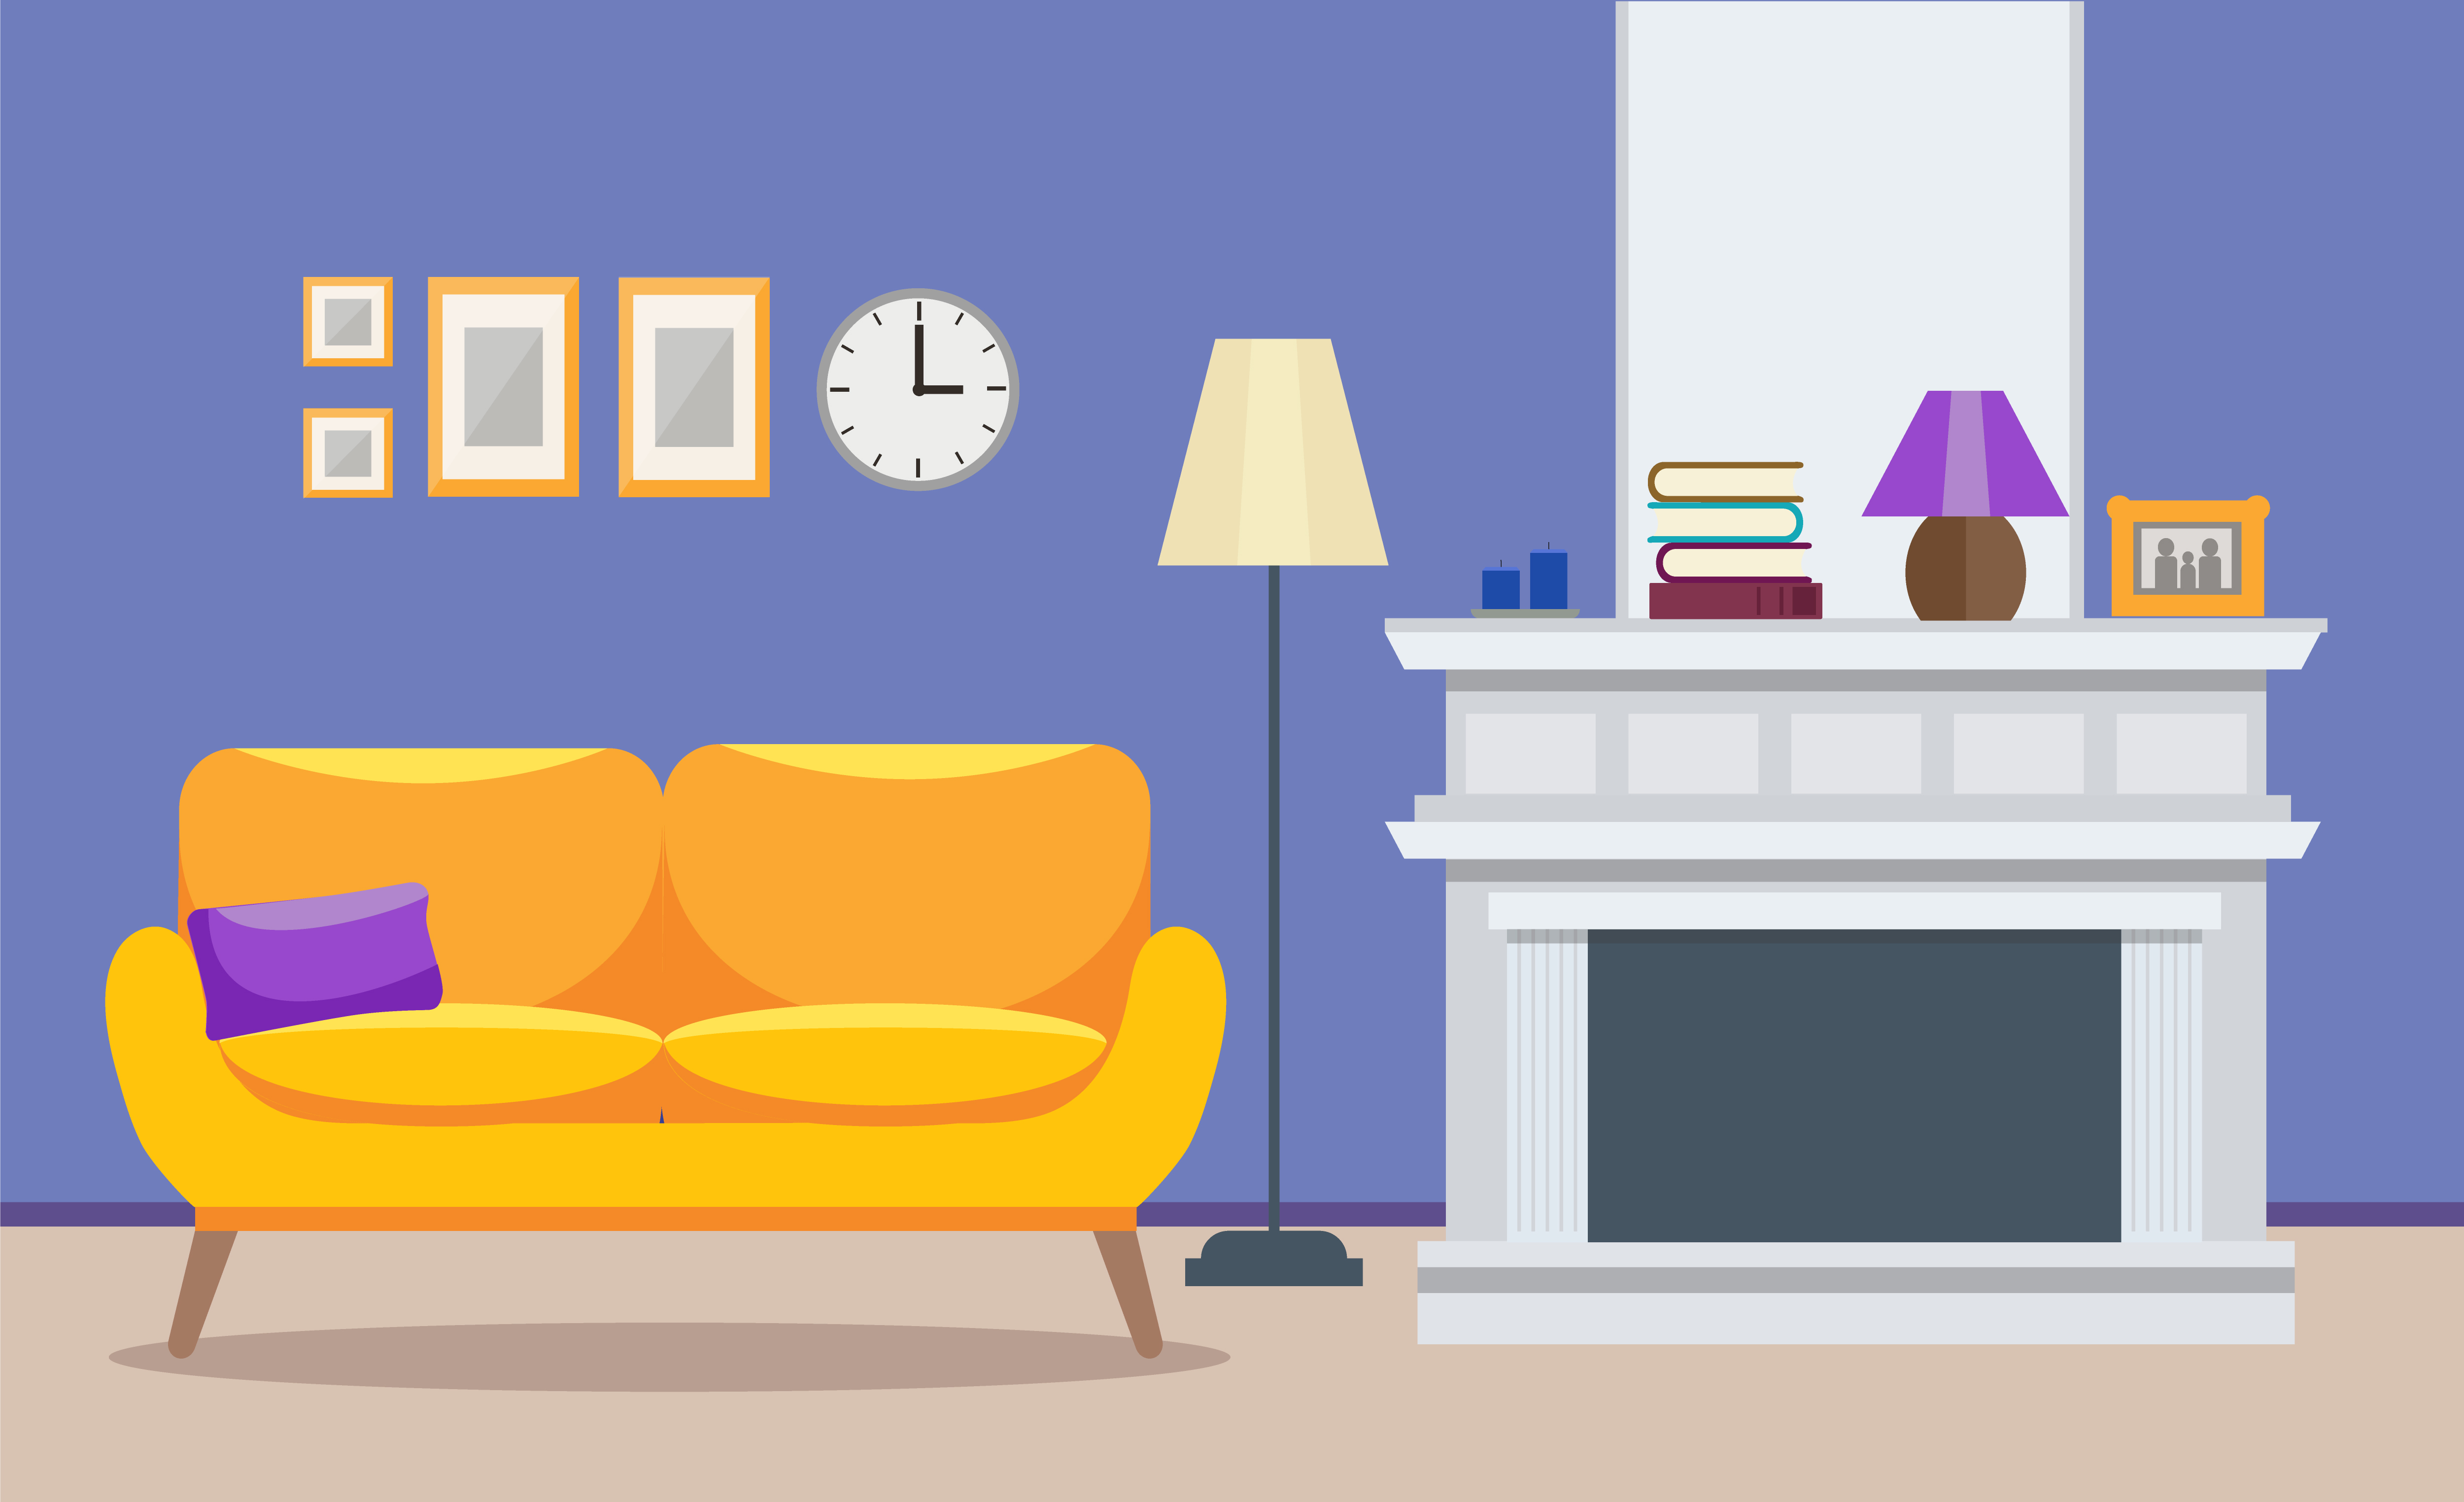 Living Room Modern Interior A Sofa With A Fireplace Apartment Design Vector Illustration In Flat Style Download Free Vectors Clipart Graphics Vector Art